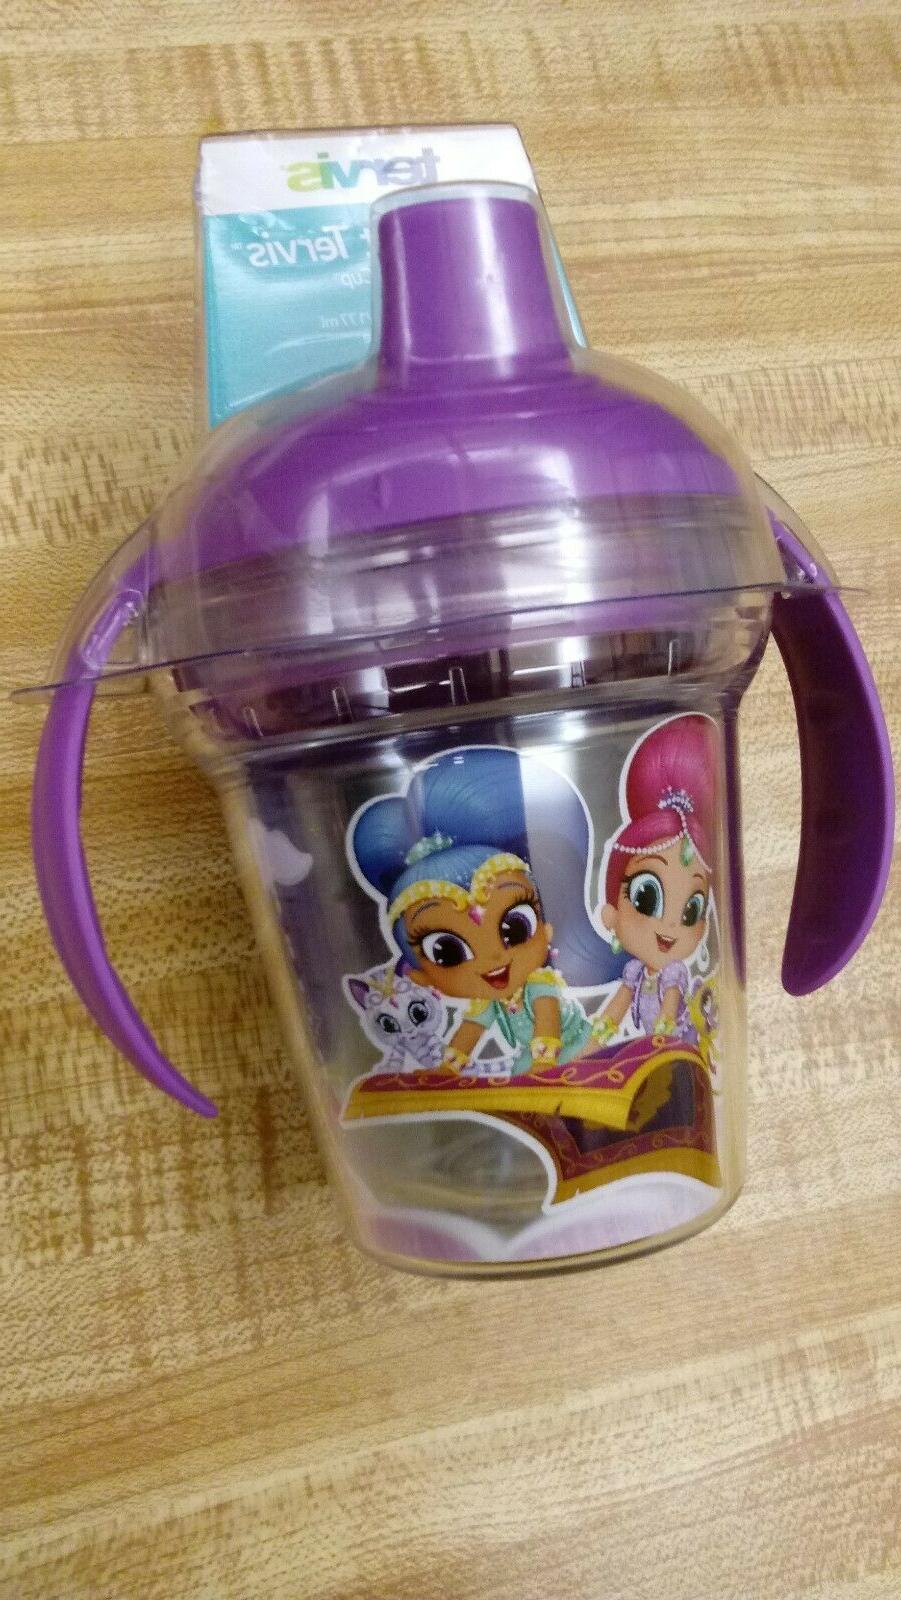 Tervis My Sippy Shimmer 9m+ 6oz/177ml BPA